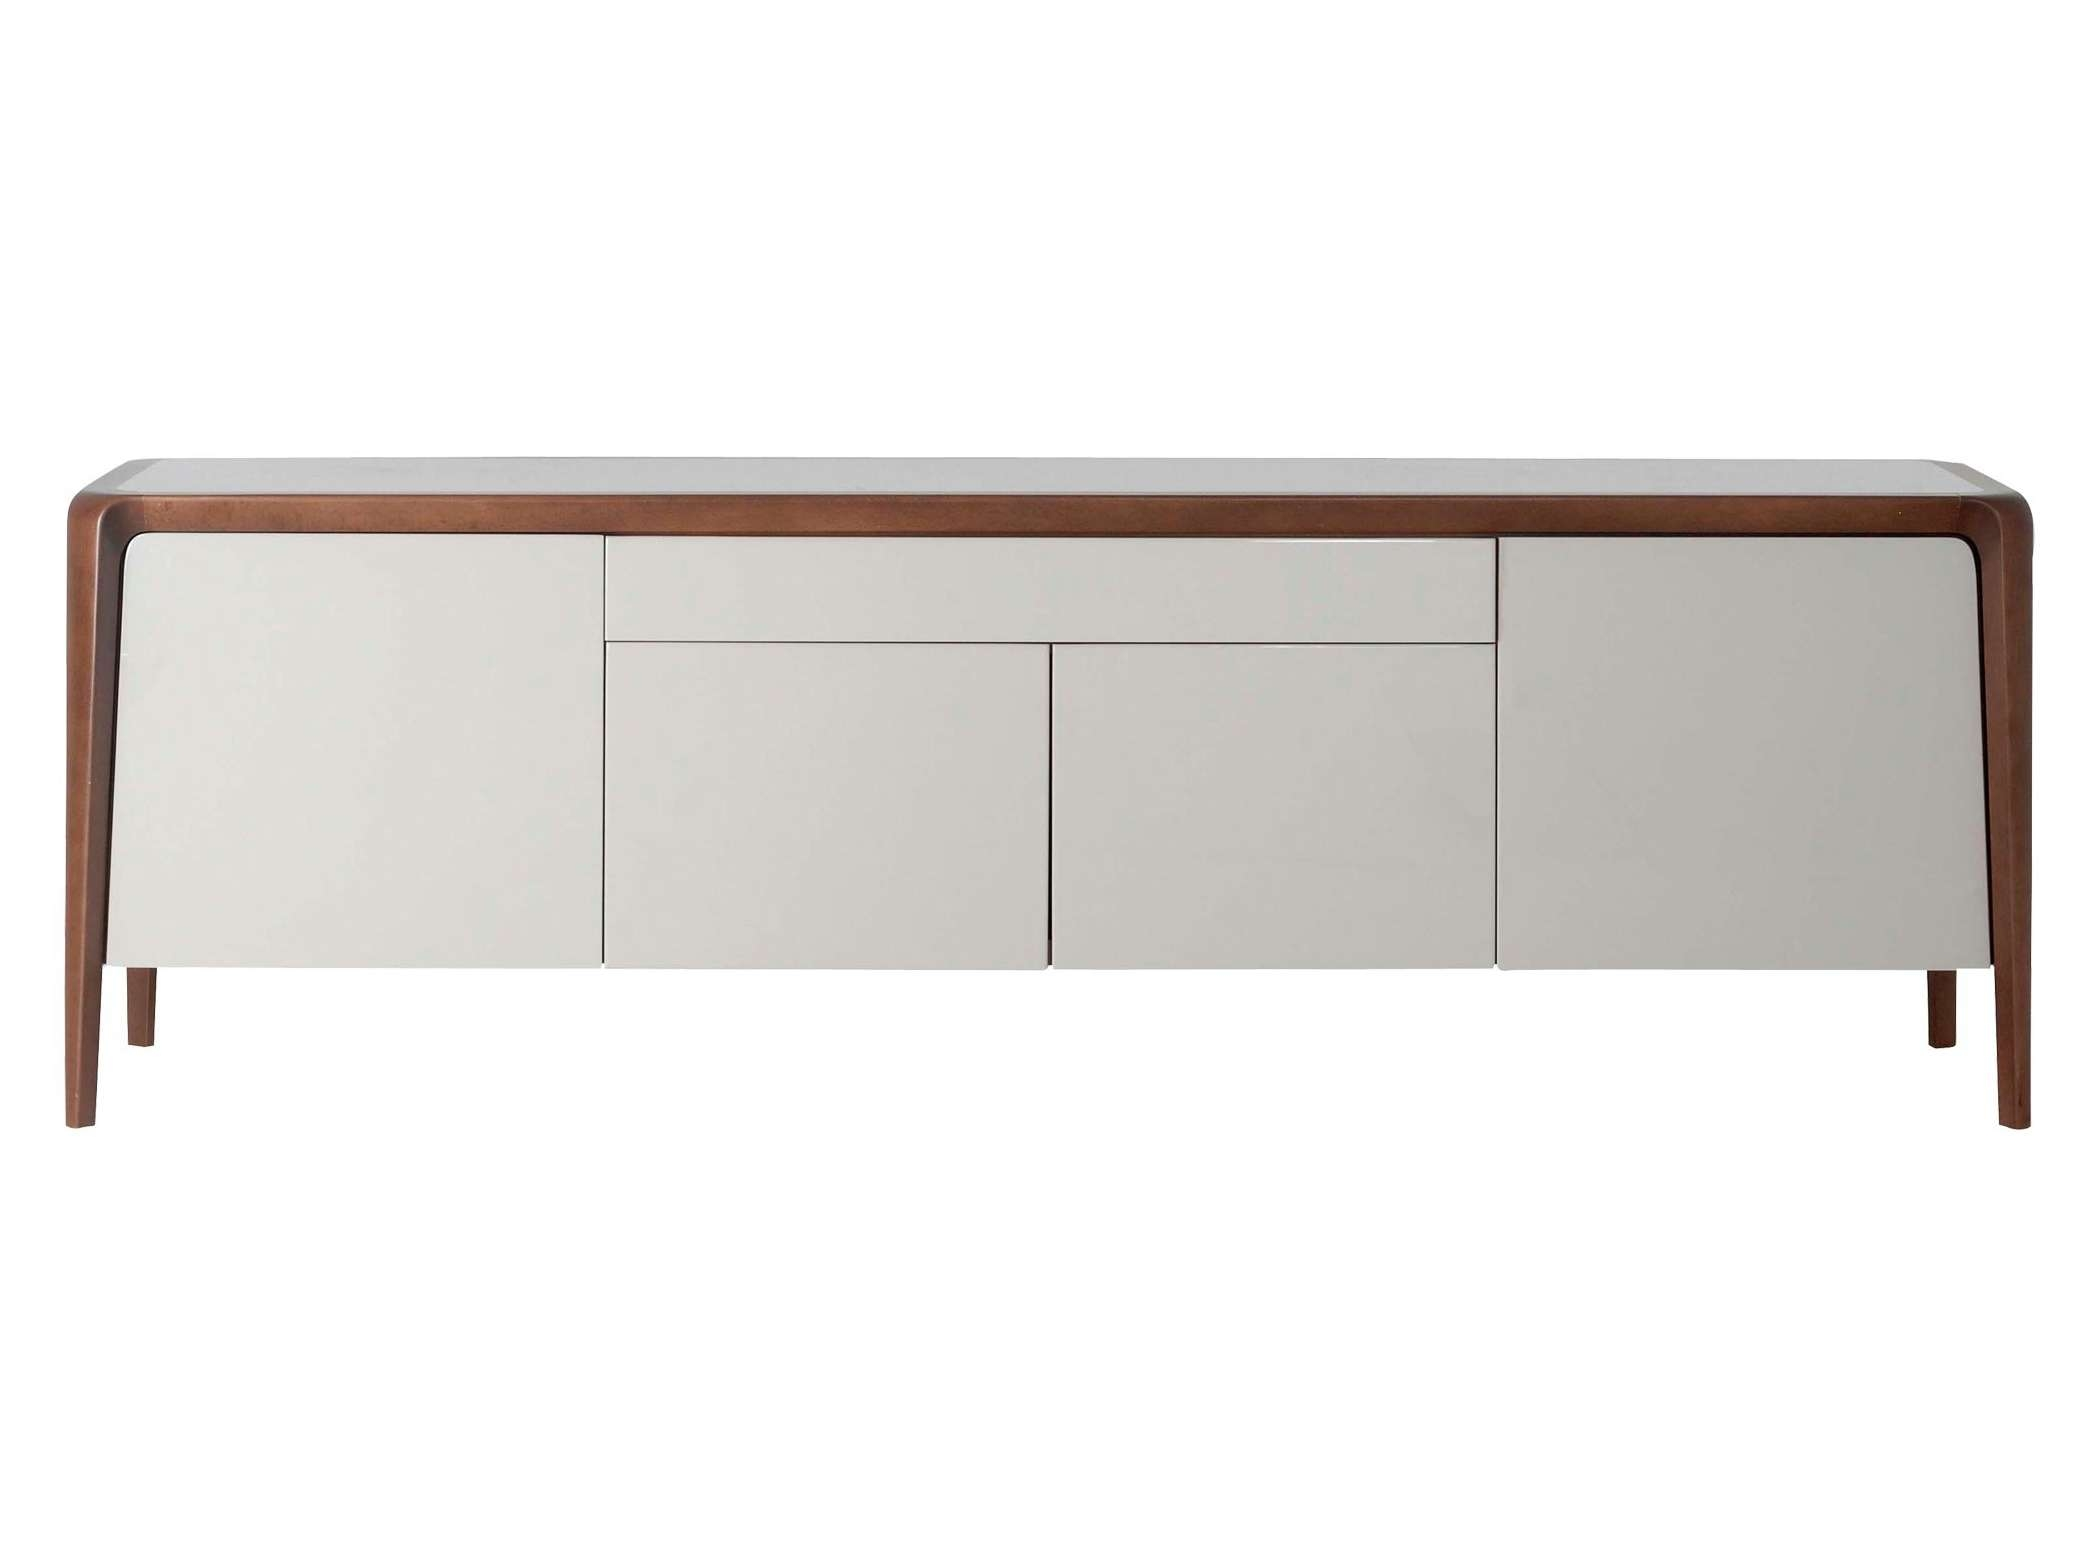 Buffet Nat Roche Bobois – Buffet Contemporain Roche Bobois With Roche Bobois Sideboards (View 1 of 20)